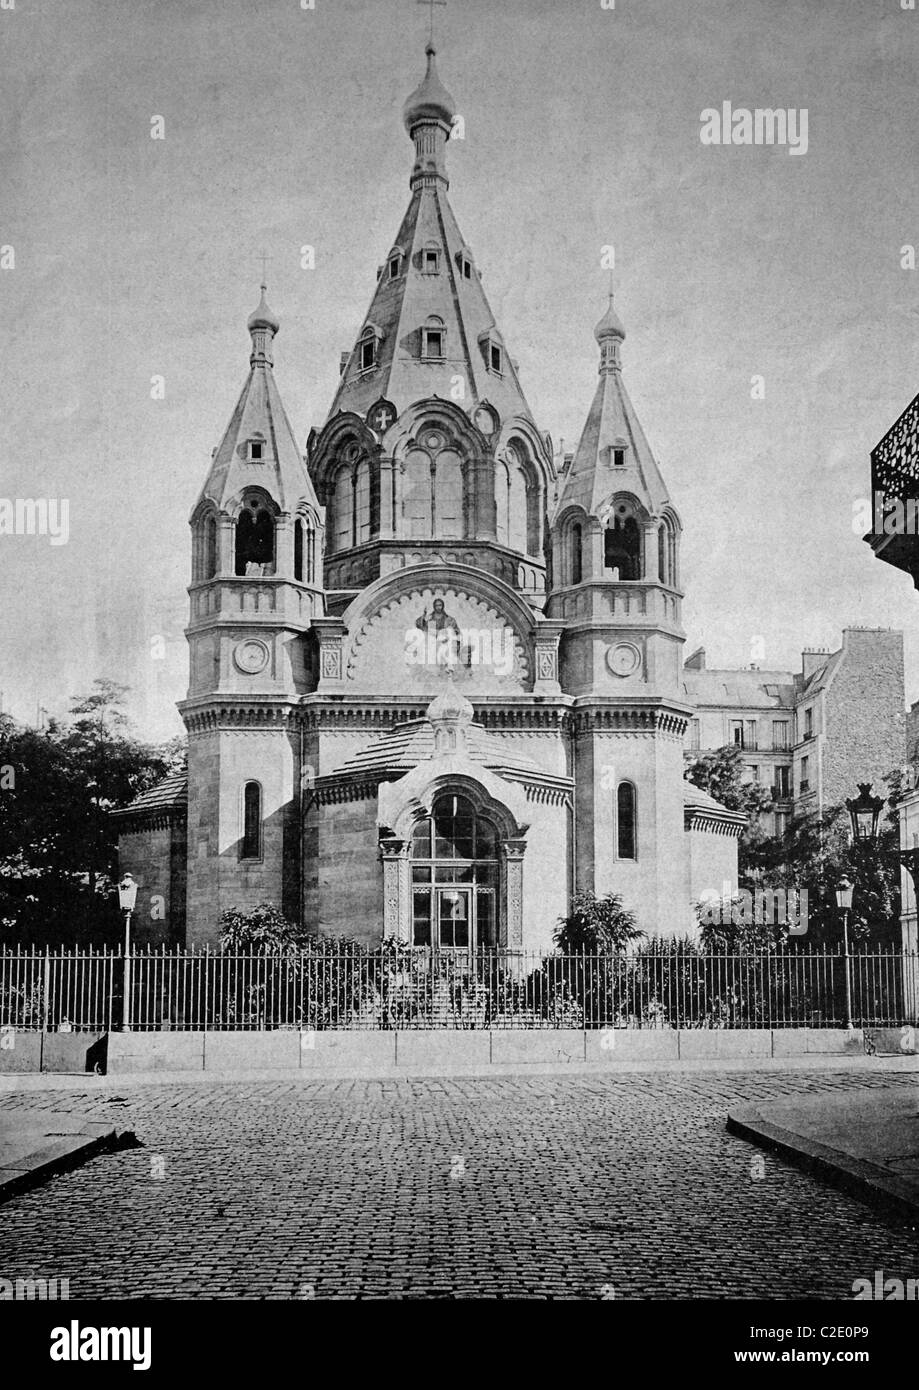 One of the first autotypes of the Eglise Russe, Russian Church, Paris, historical photograph, 1884 Stock Photo